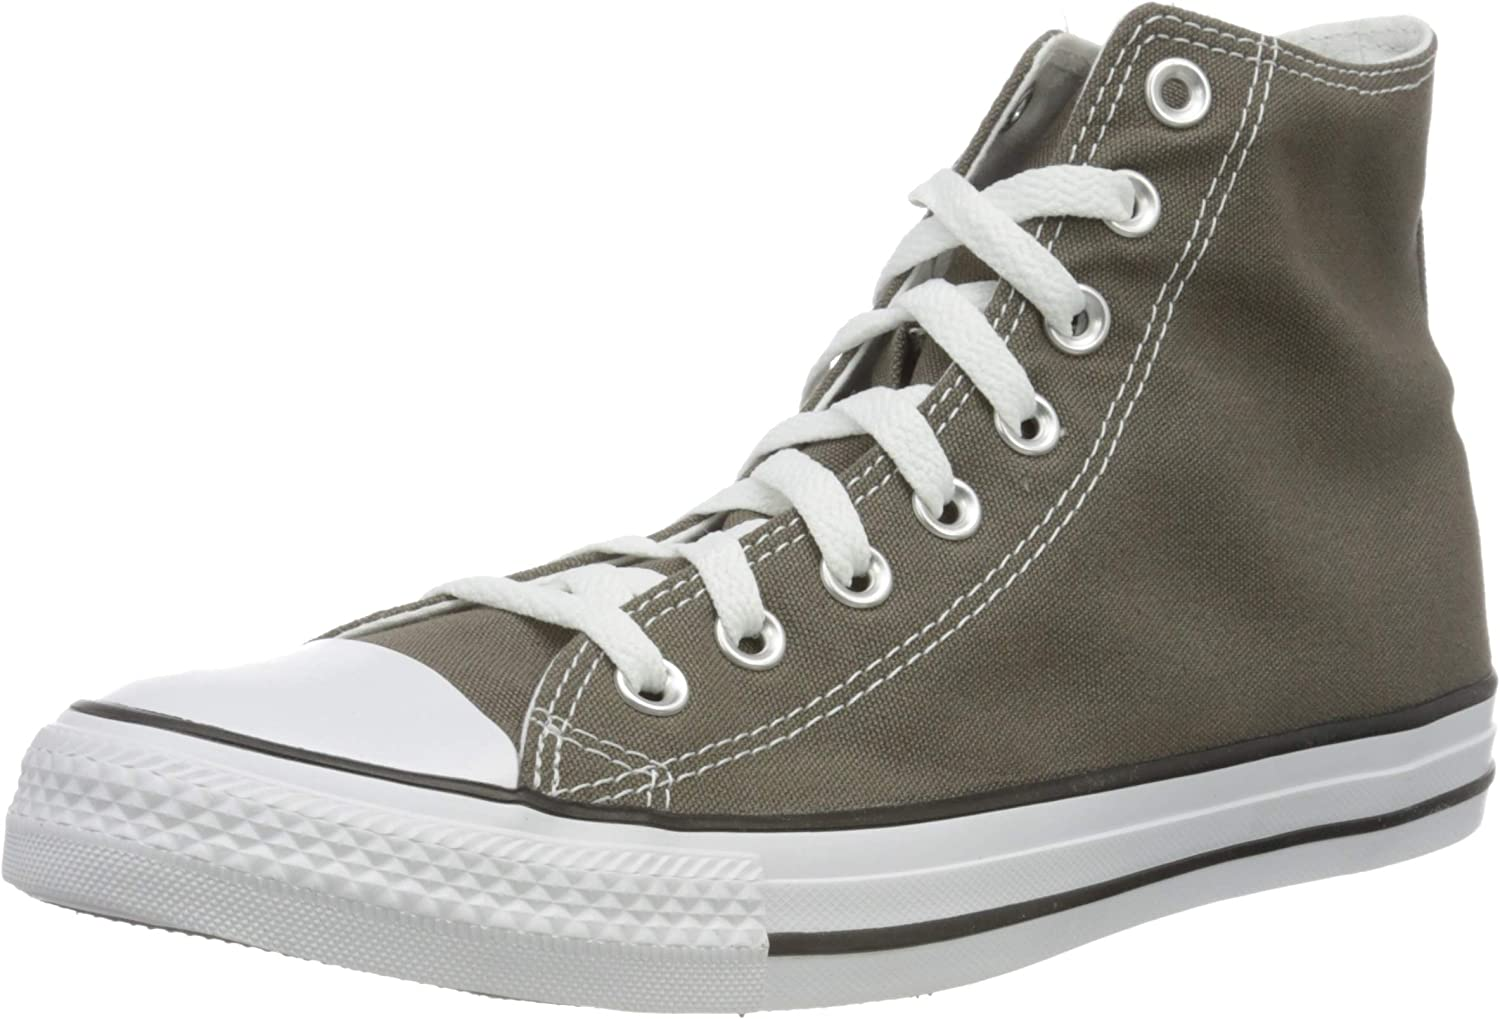 Converse Chuck Taylor All Star High Top Sneaker